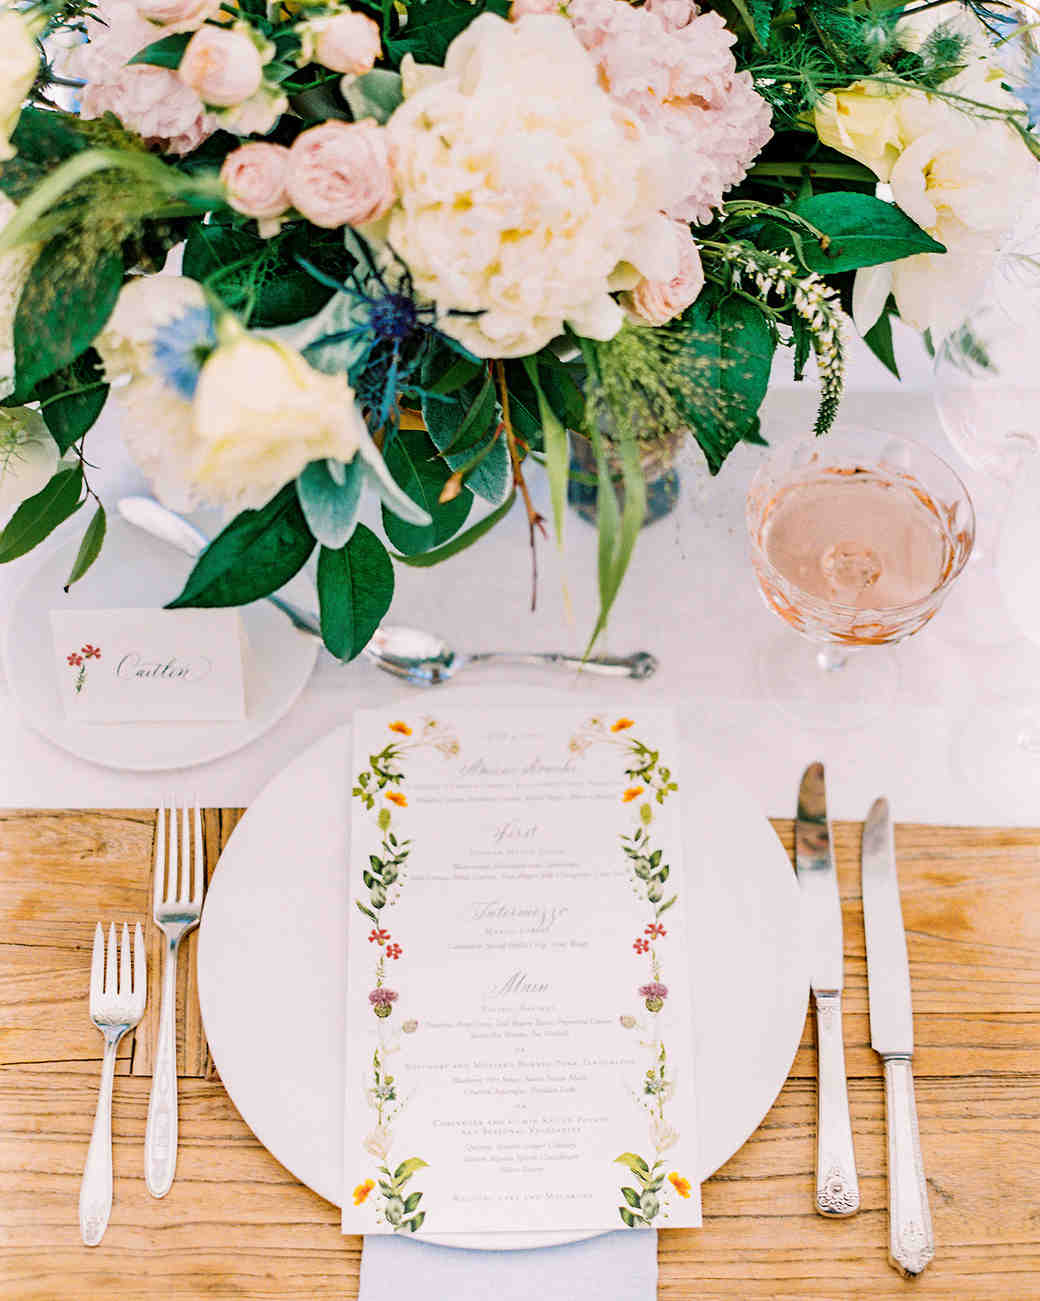 caitlin amit wedding place setting